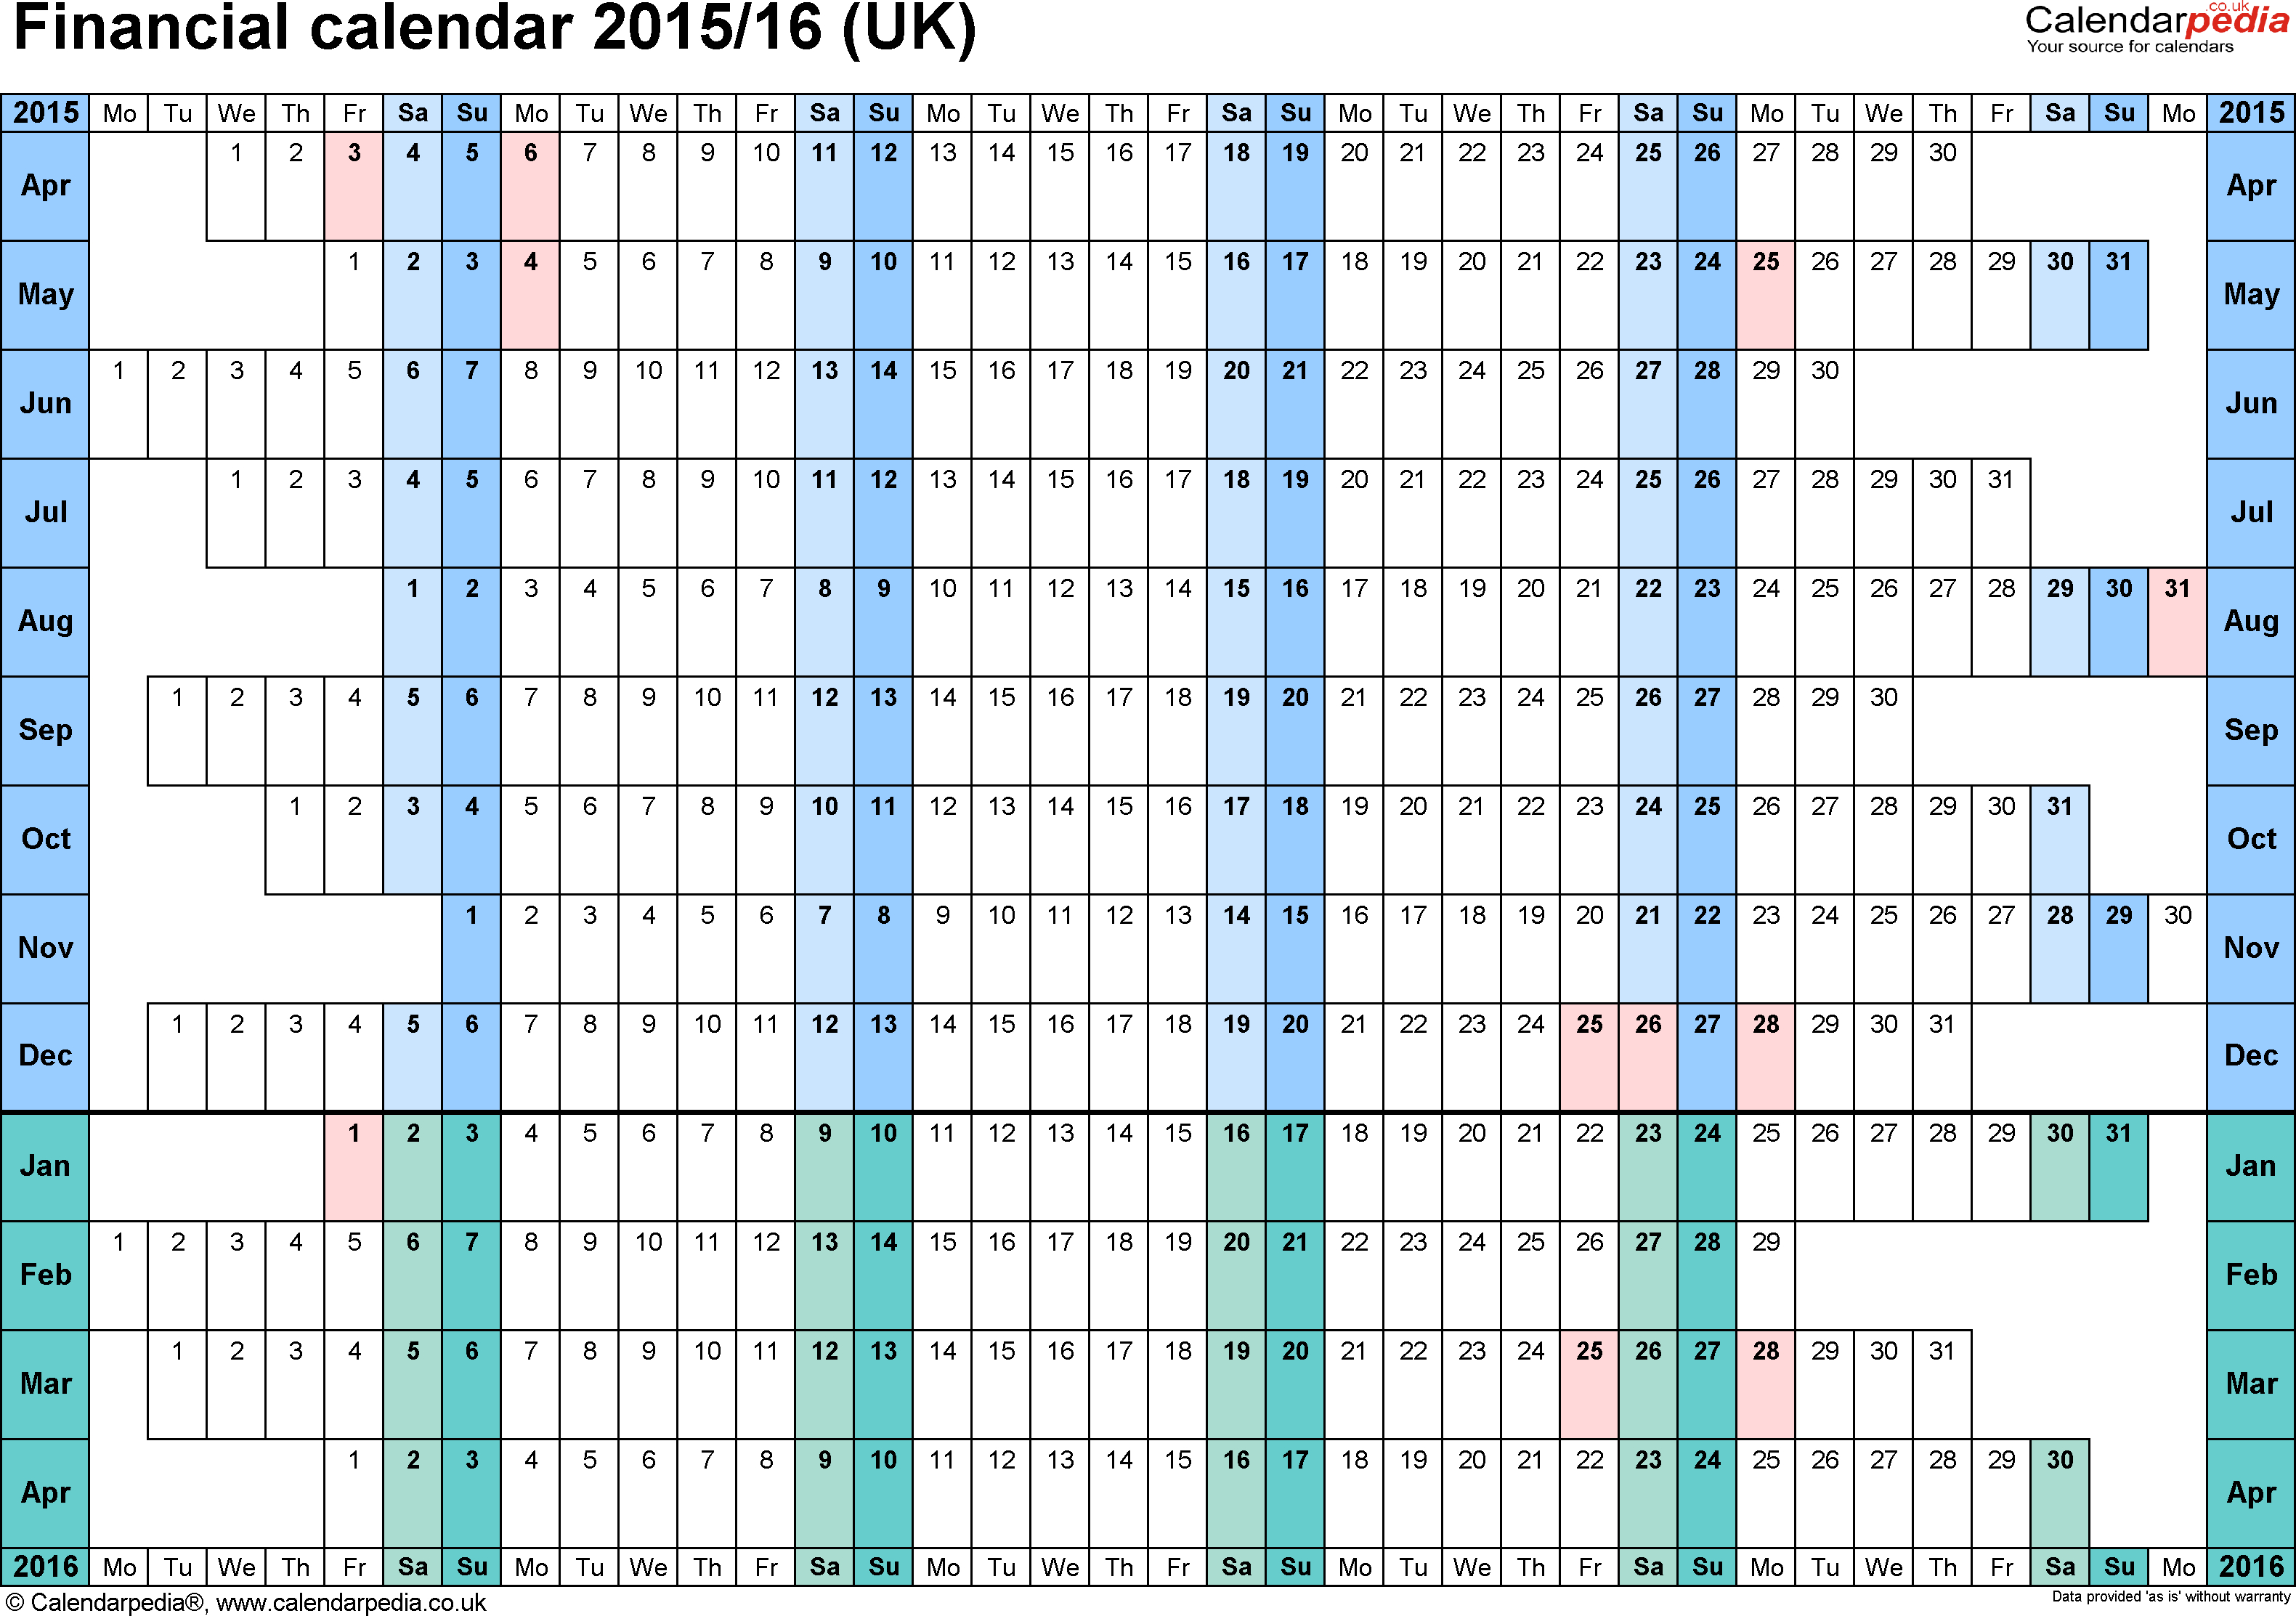 Financial Calendars 2015/16 (Uk) In Microsoft Word Format for Hmrc Tax Weekly Calander 2019-2020